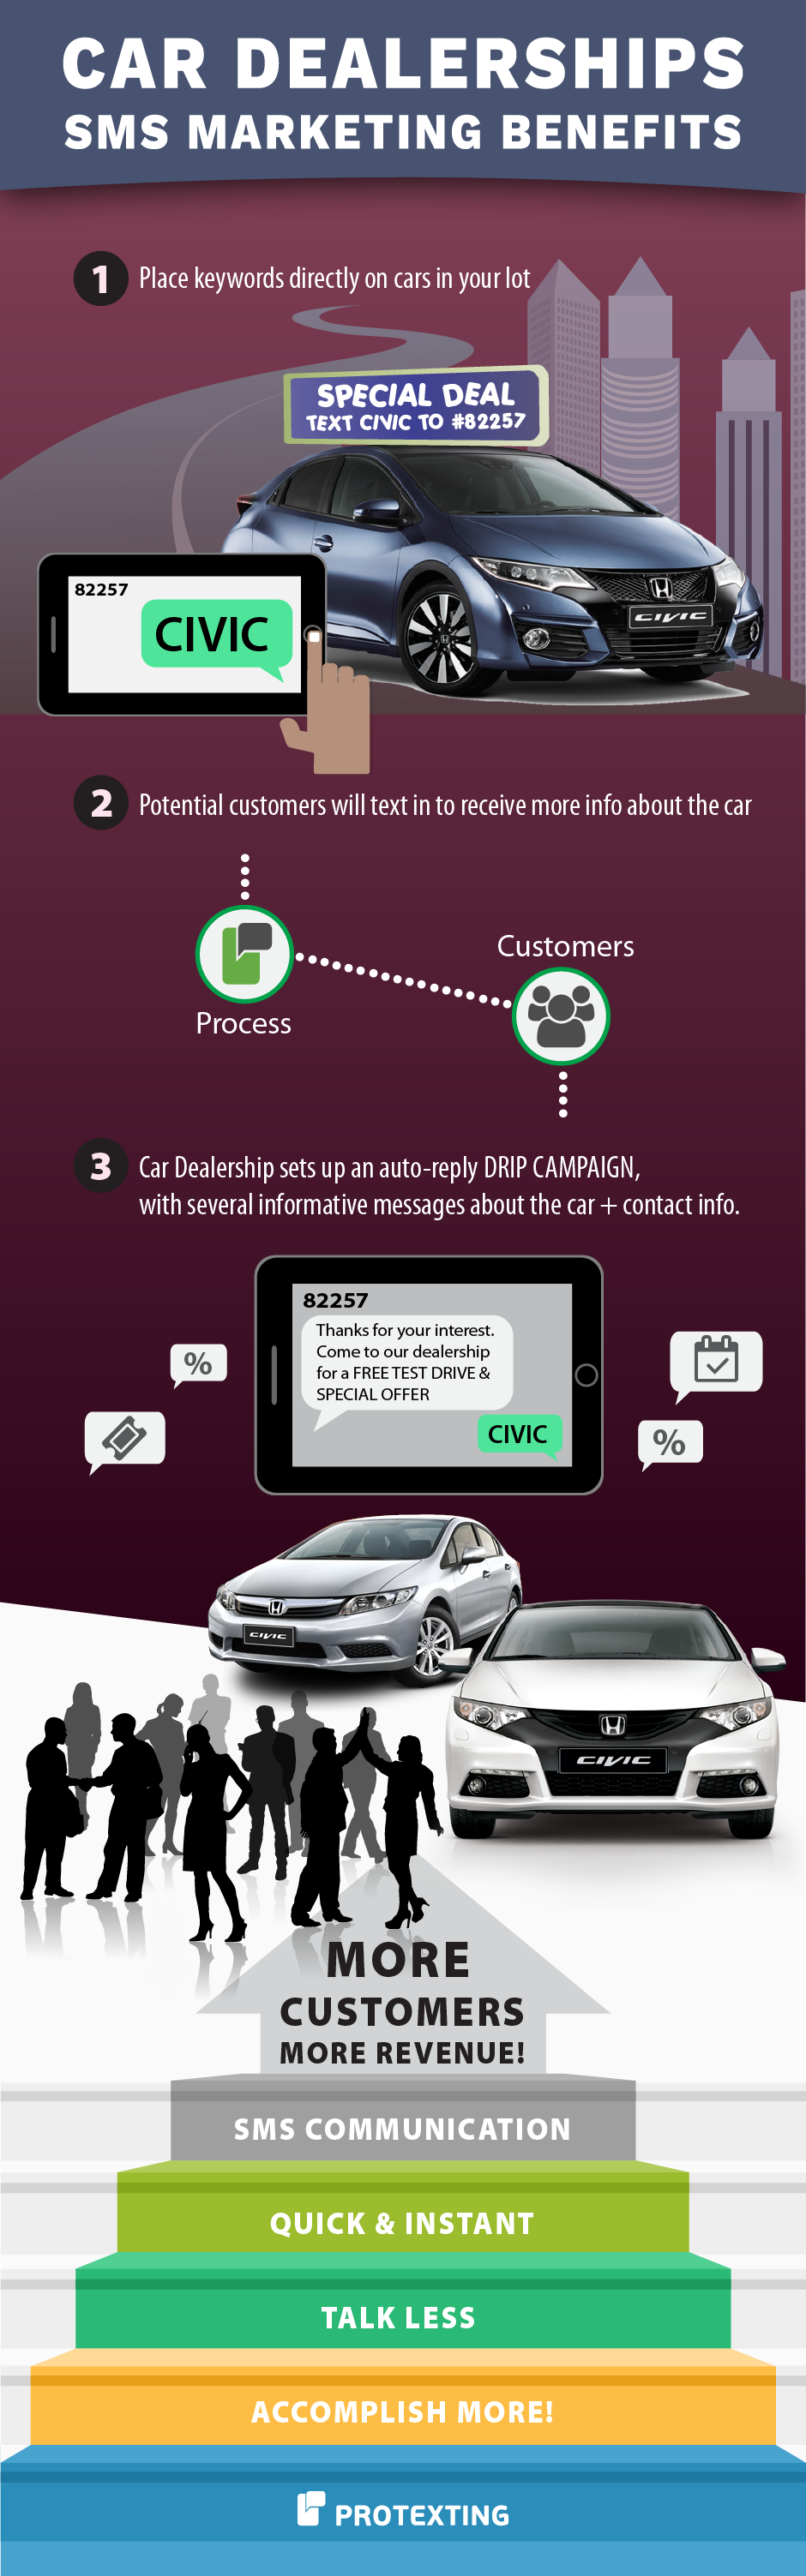 SMS MMS marketing for Car Dealerships